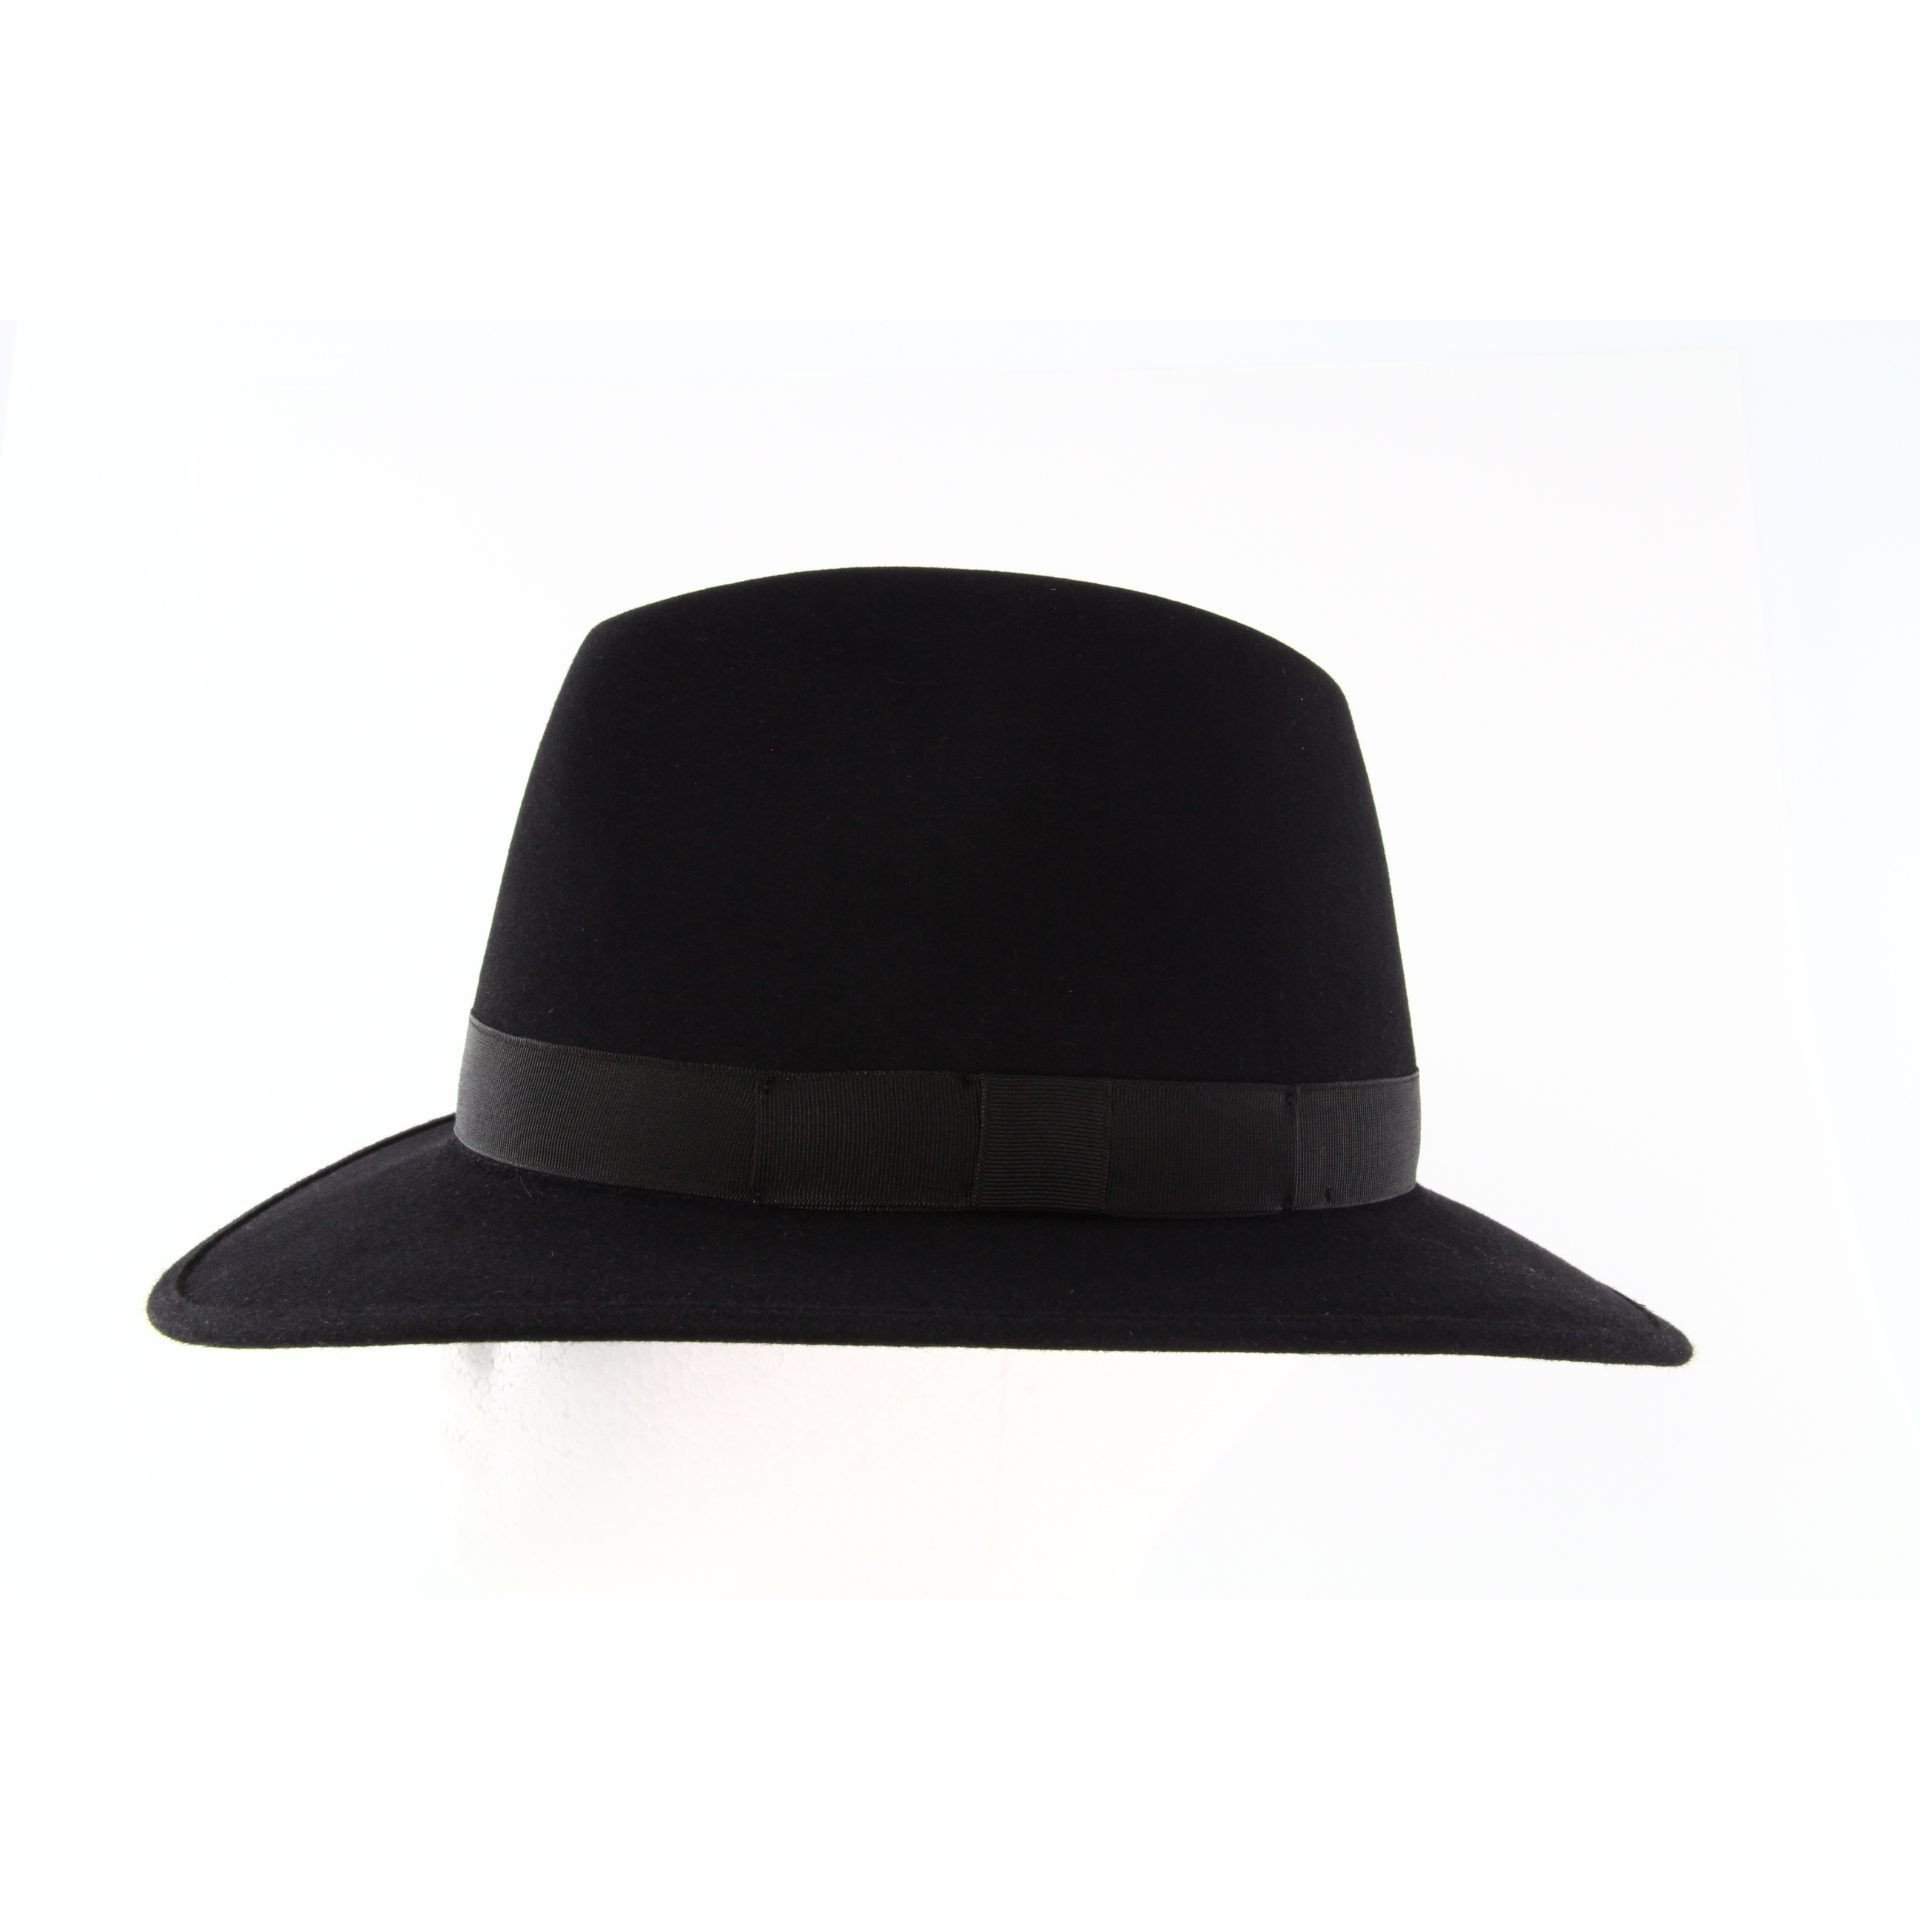 54d92aab32d Akubra International - Black - Hats 100 SIDE ...